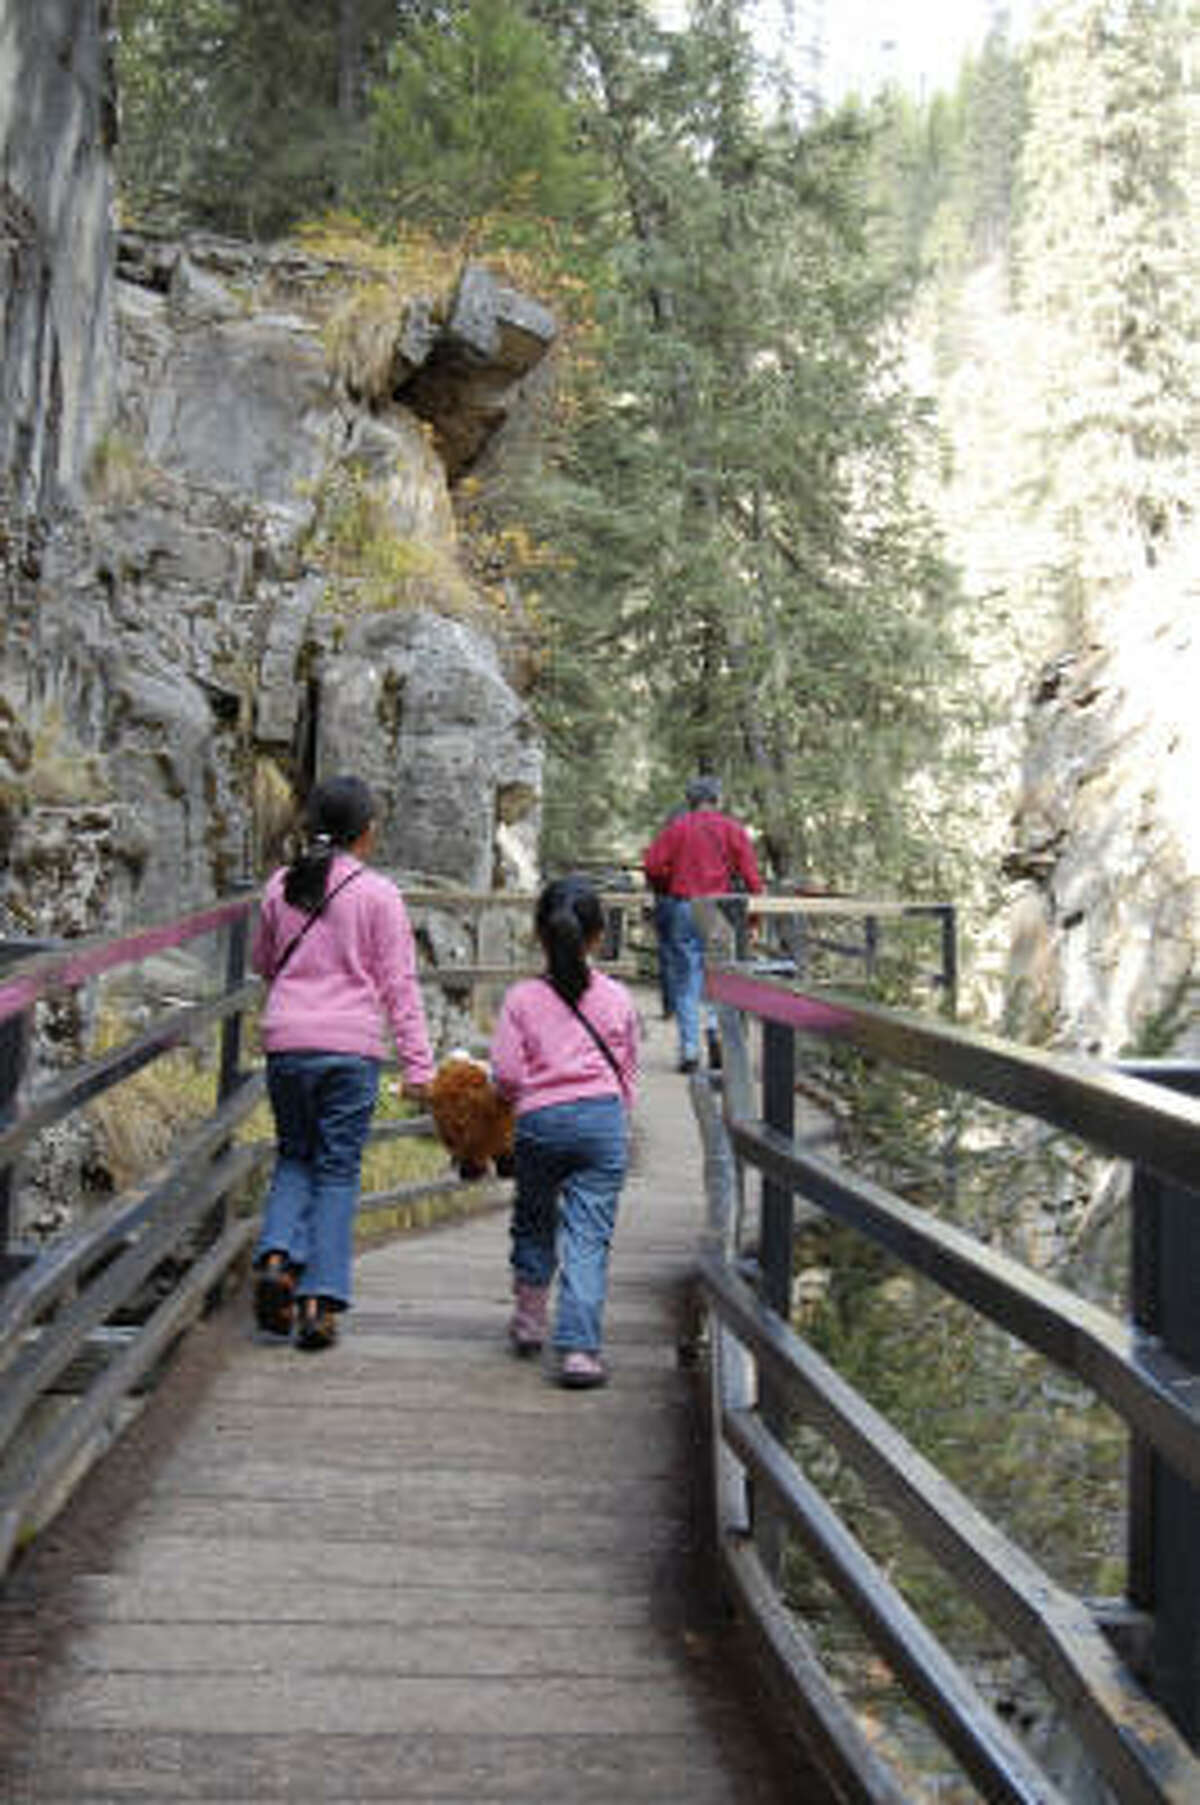 Banff National Park's Johnston Canyon is an easy, well-maintained path that families frequent.